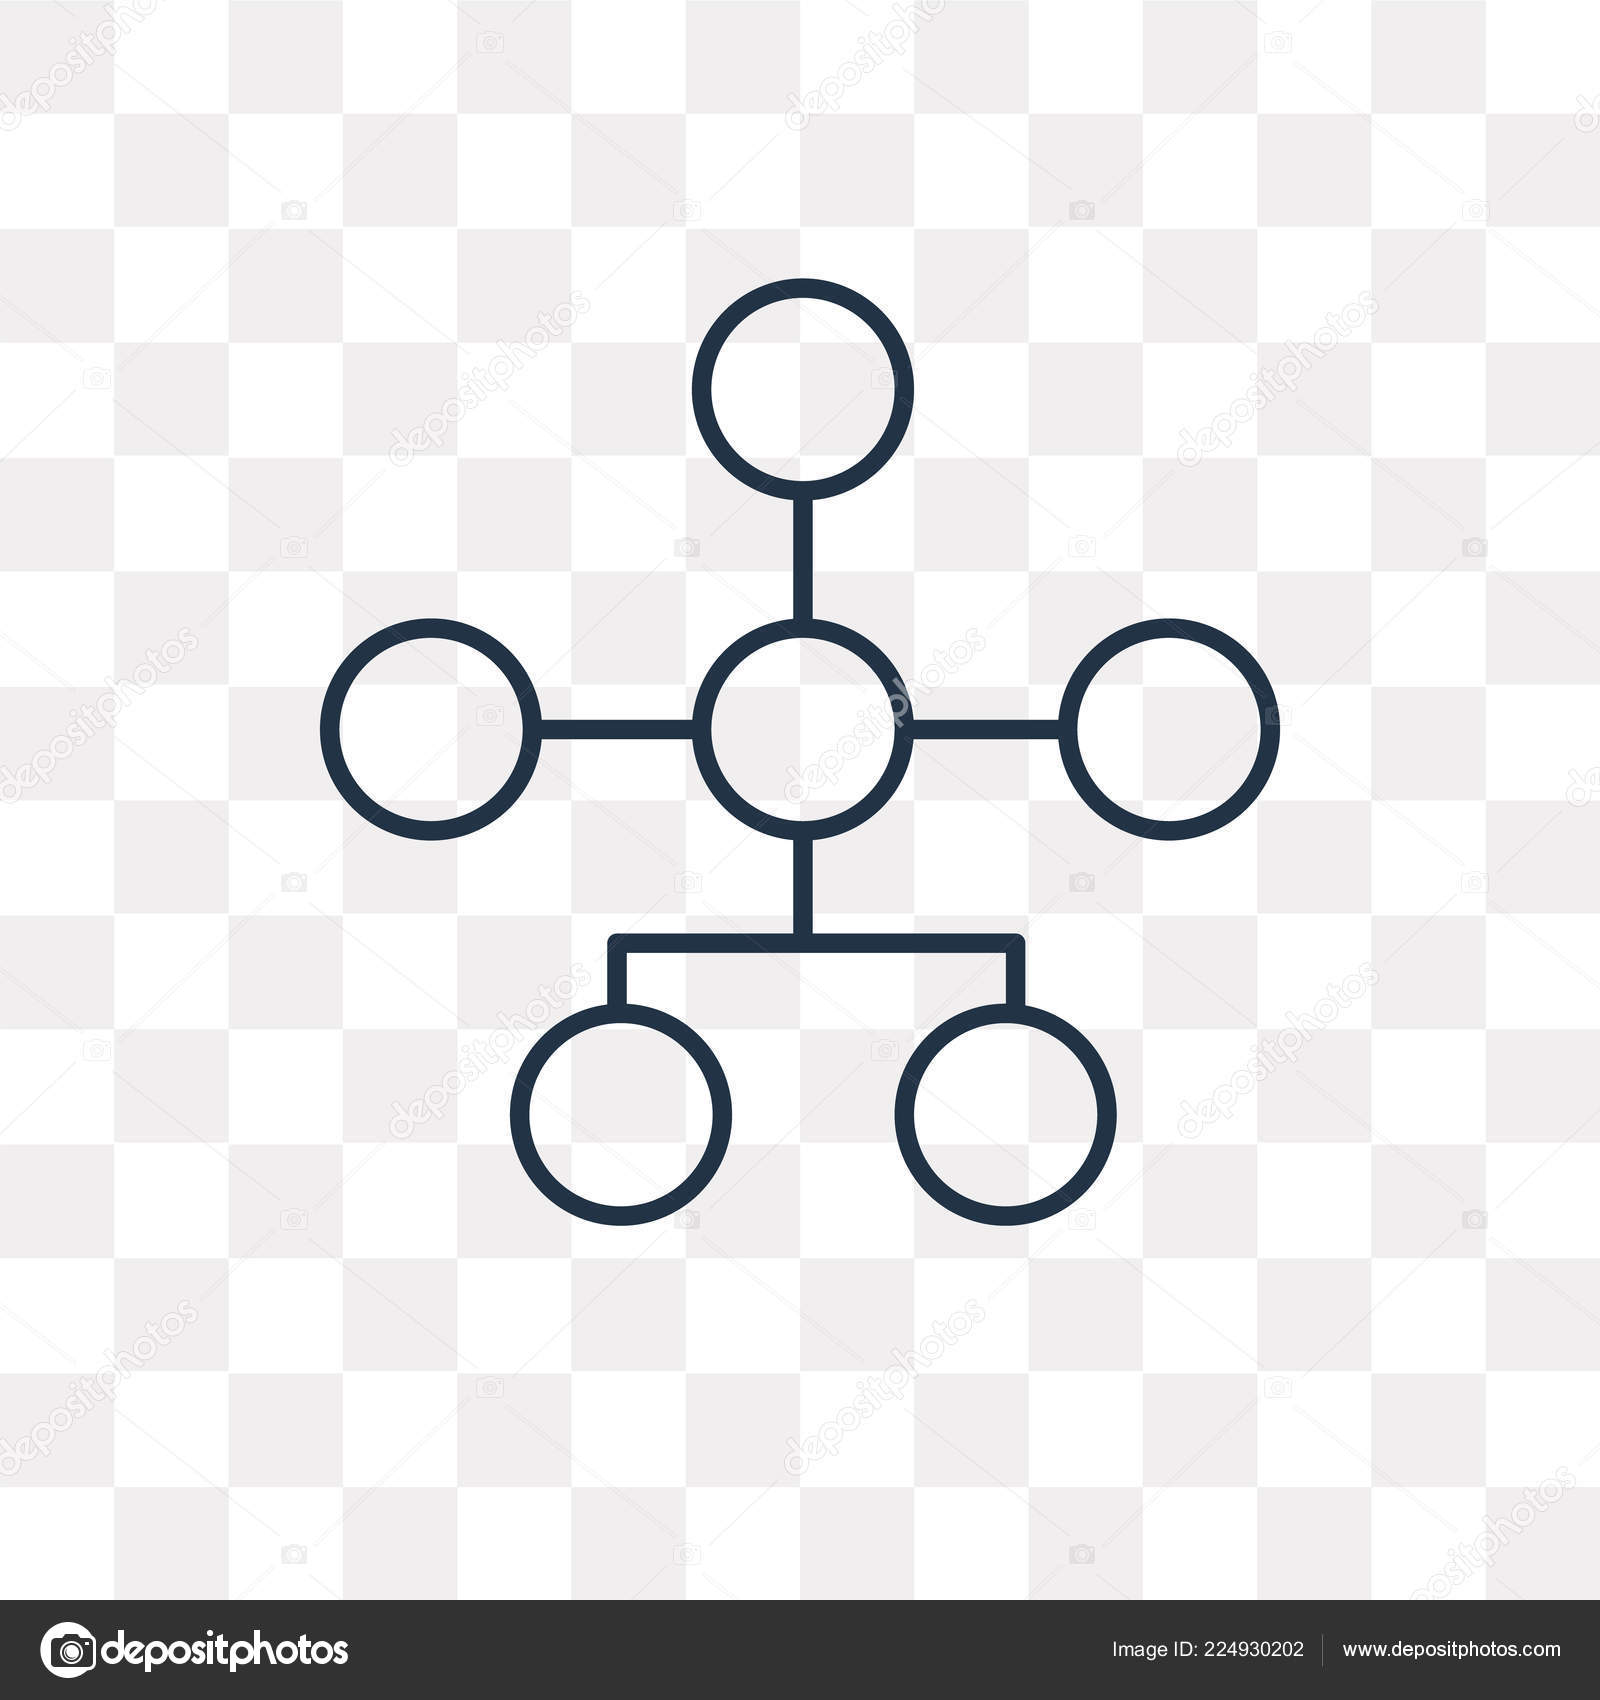 hierarchical structure vector outline icon isolated transparent background high quality stock vector c mmvector 224930202 https depositphotos com 224930202 stock illustration hierarchical structure vector outline icon html